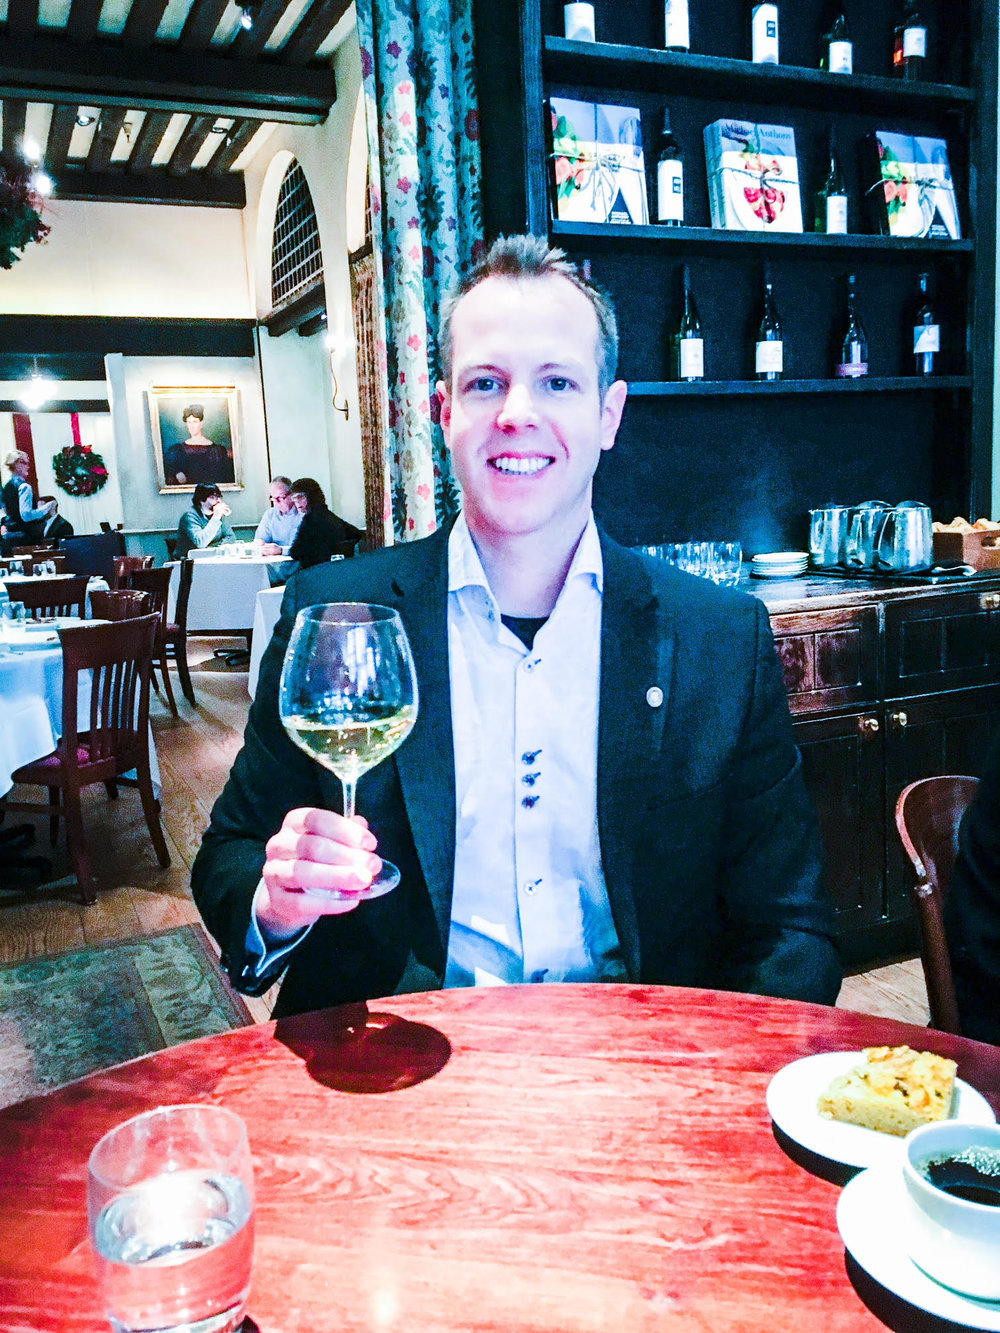 Here I am at one of my favorite spots for wine in NYC, Gramercy Tavern, enjoying some Chardonnay from a Riedel Chardonnay glass.